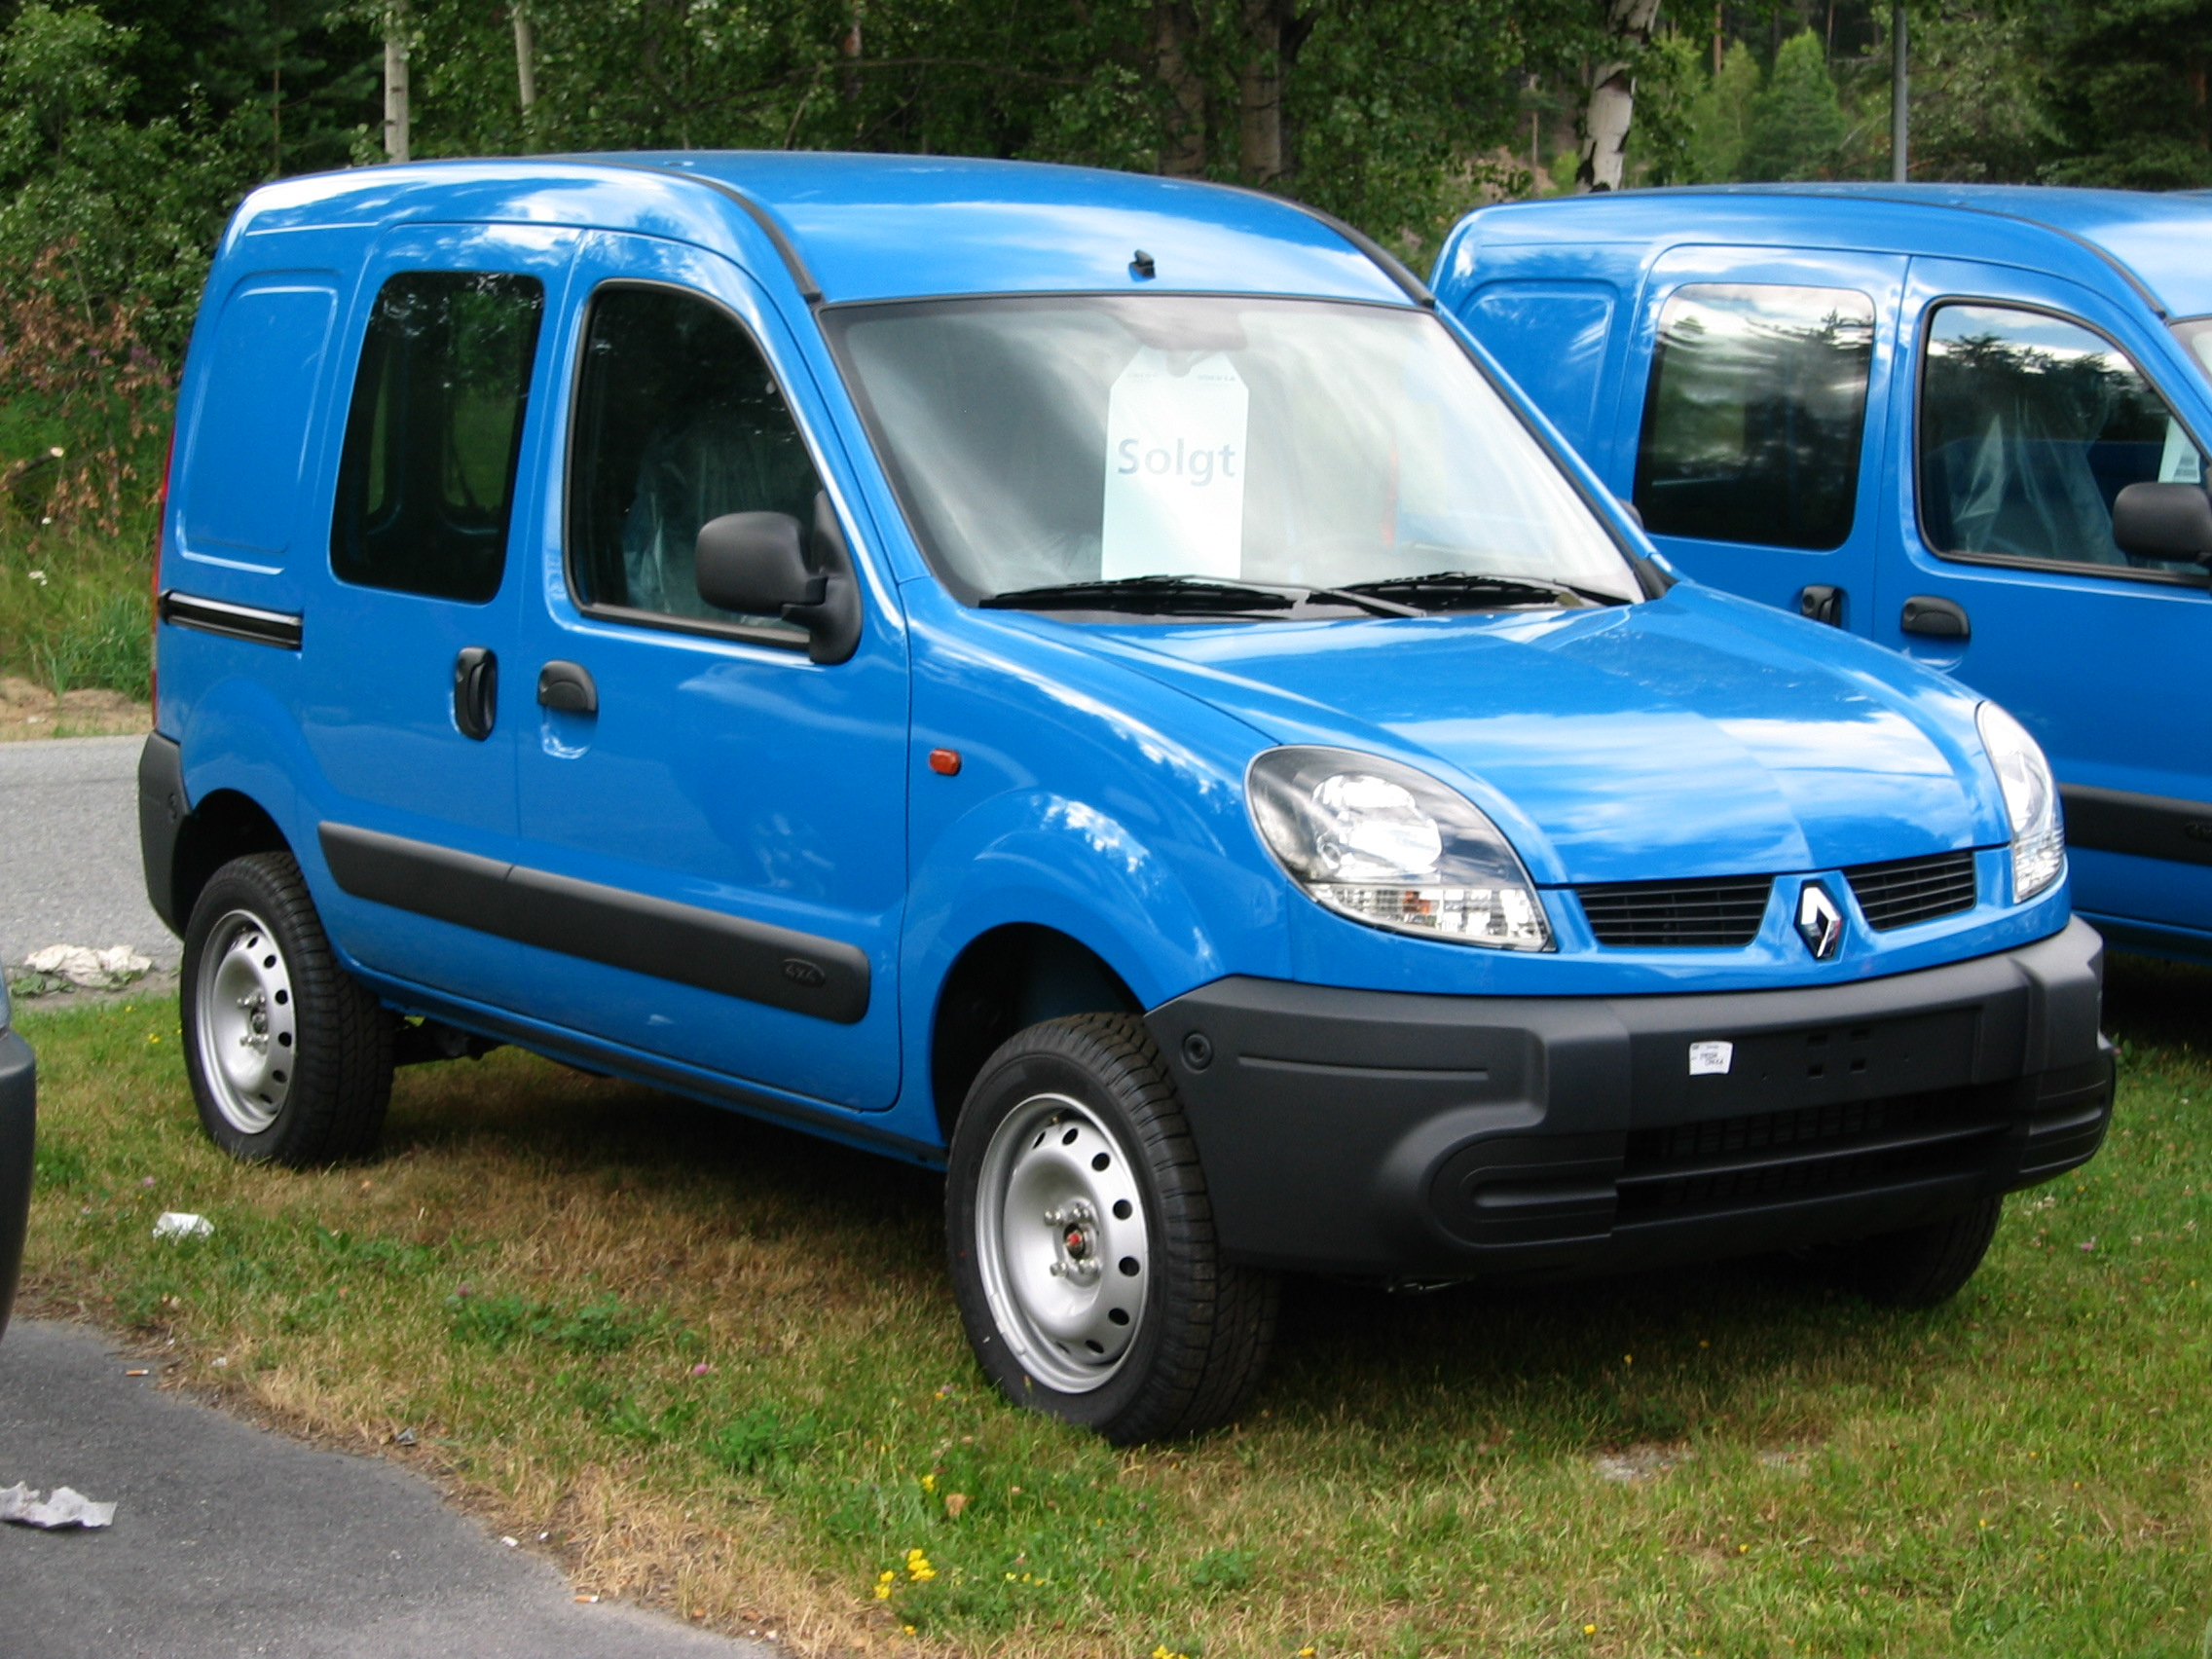 bestand 2005 renault kangoo wikipedia. Black Bedroom Furniture Sets. Home Design Ideas